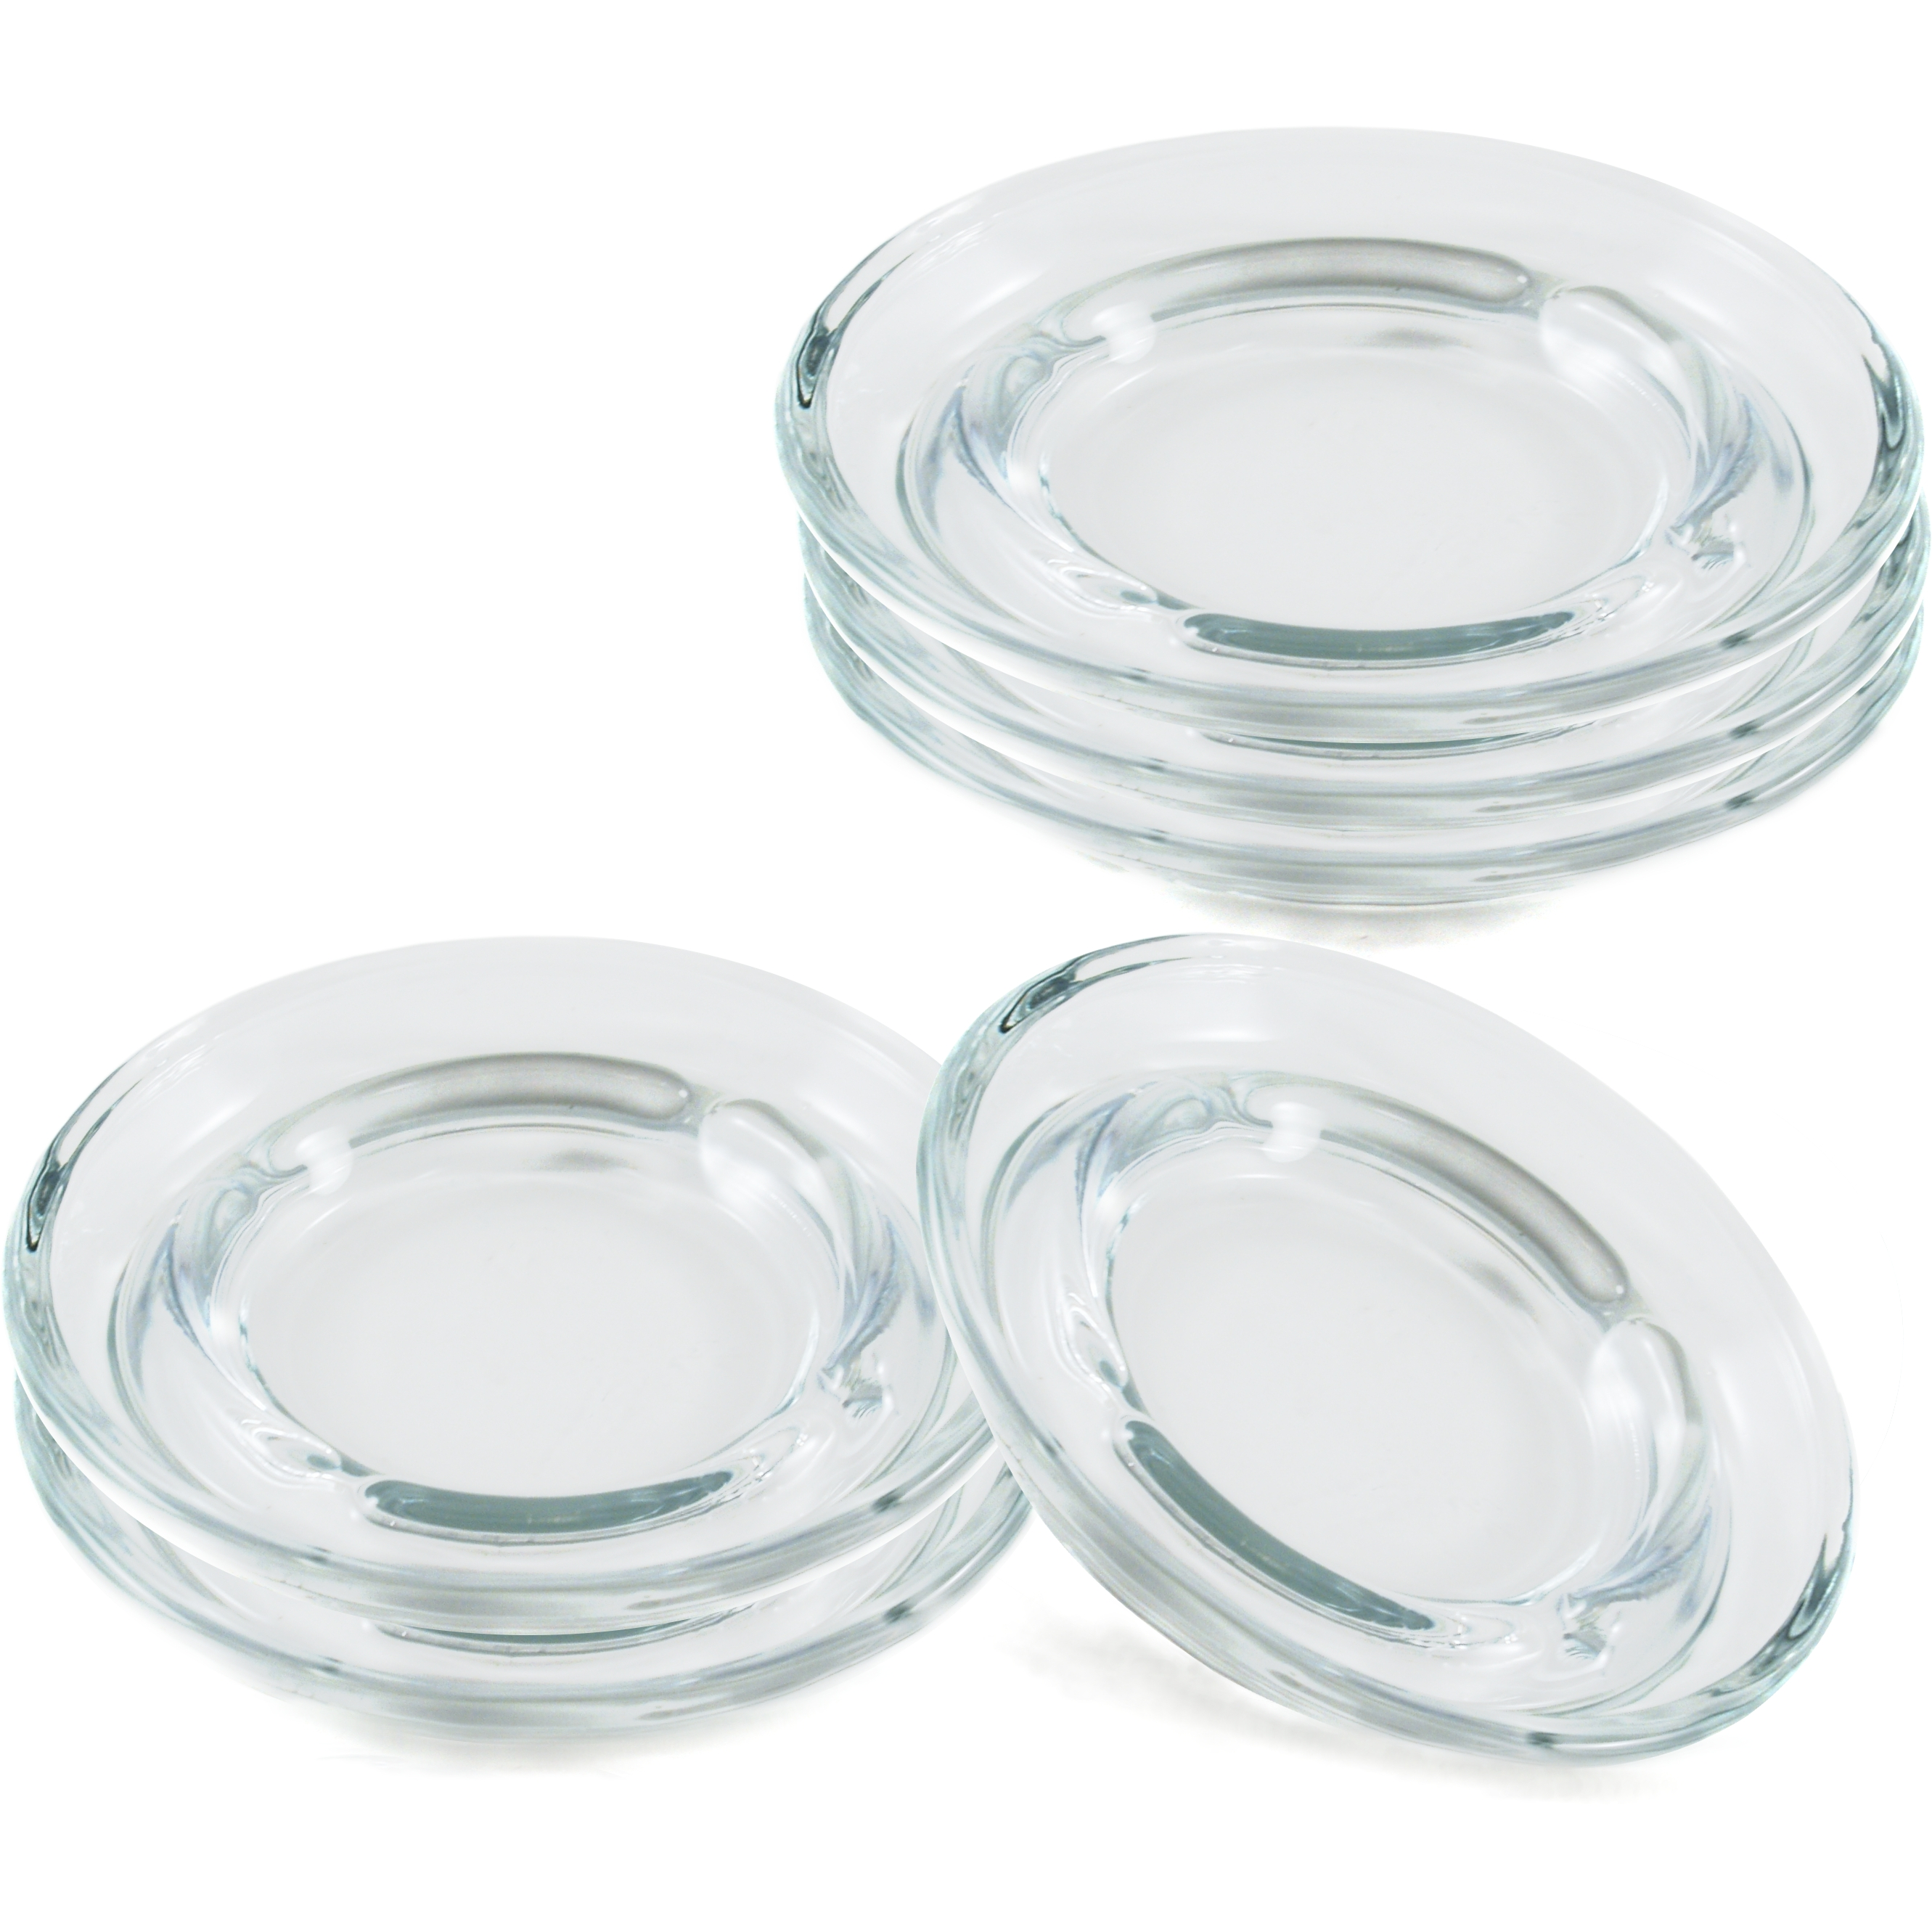 Anchor Hocking Glass Safety Stacking Ashtray, Set of 6